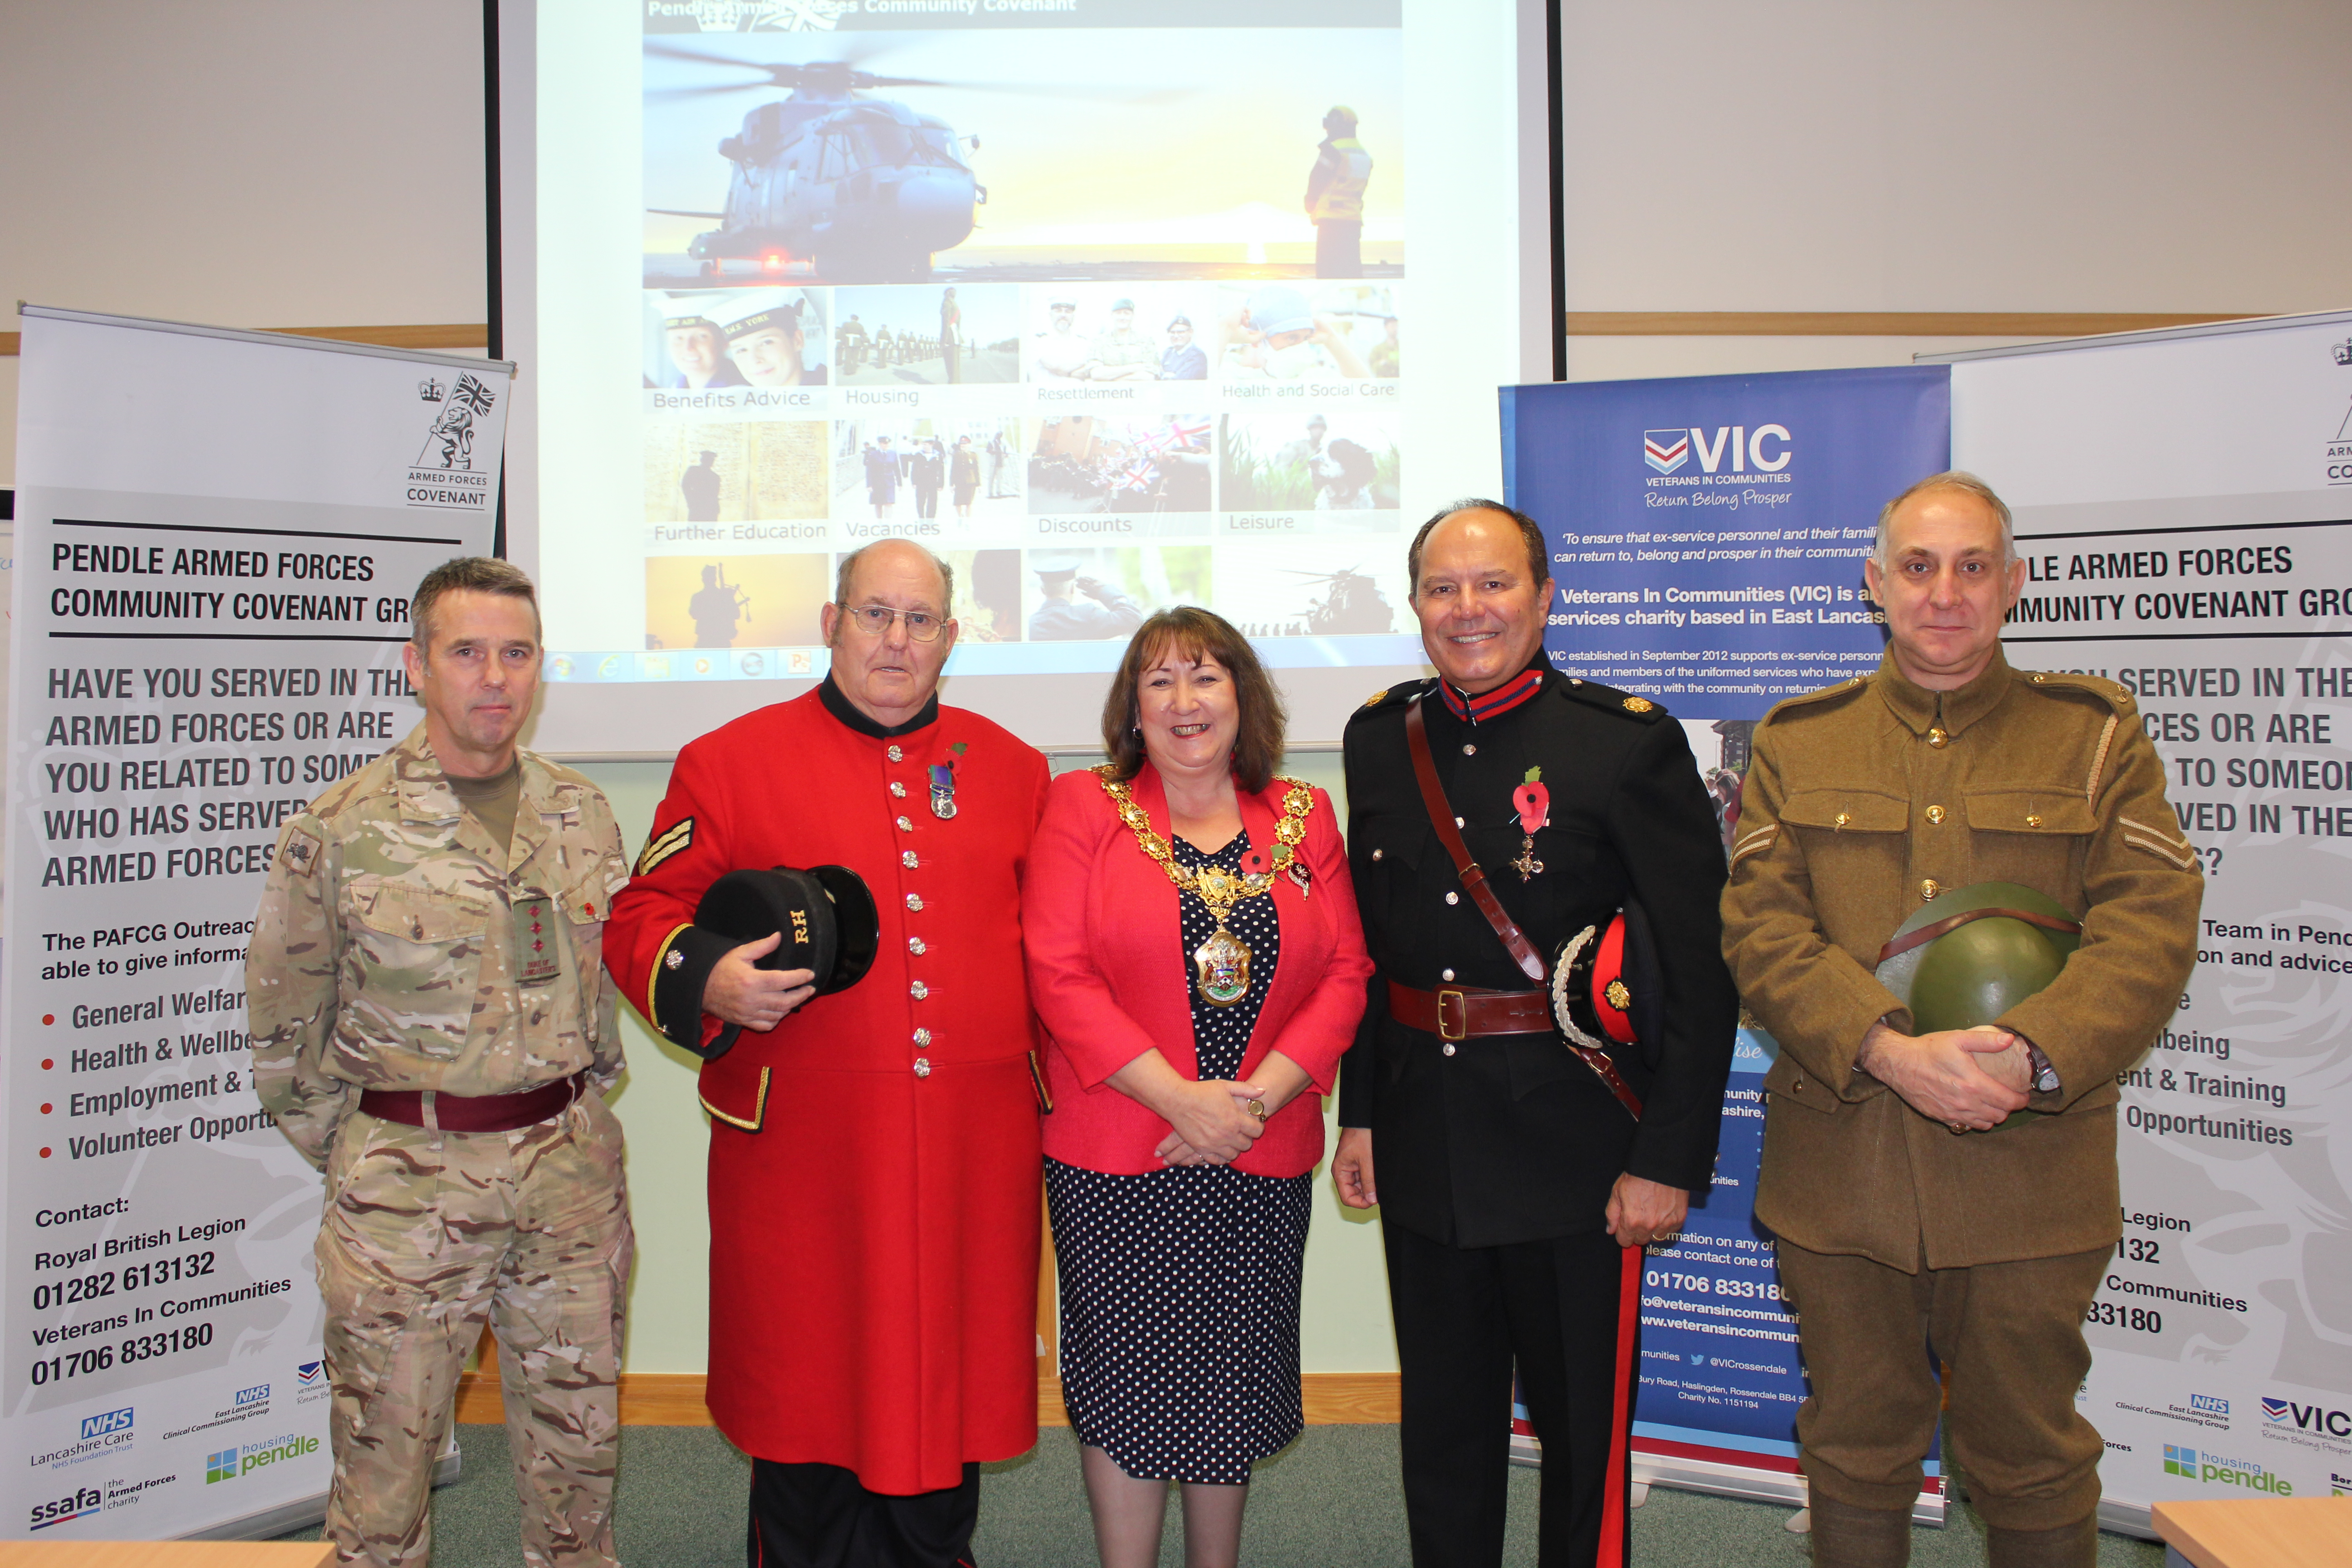 Pendle signs its pledge to the Armed Forces